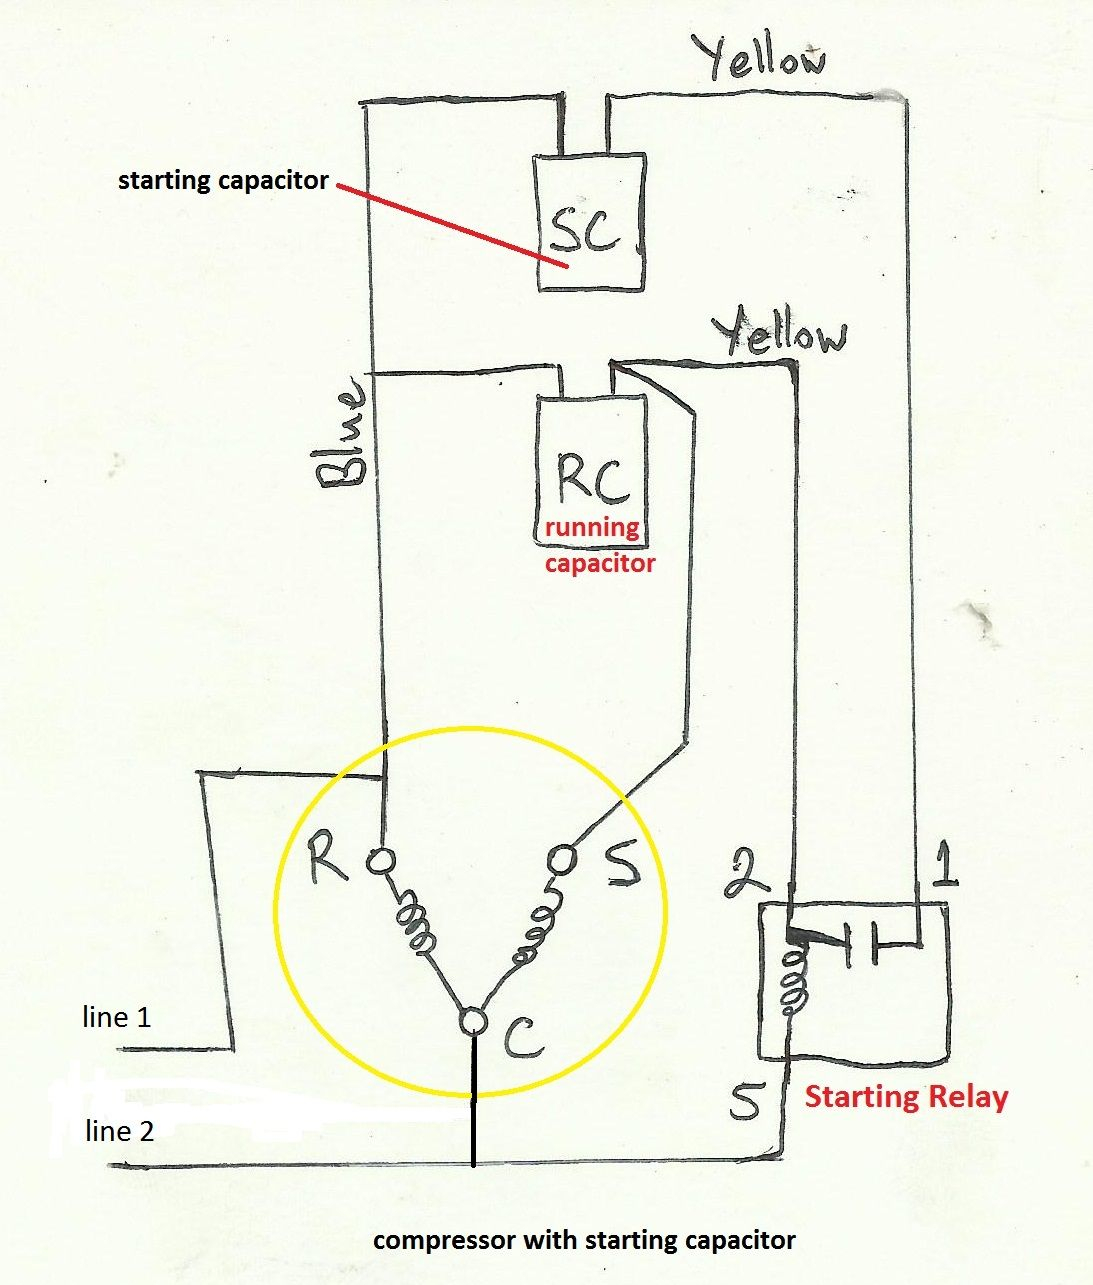 ac compressor wiring diagram Collection-Air pressor Capacitor Wiring Diagram Before you call a AC repair man visit my blog for some tips on how to save thousands in ac repairs 6-r